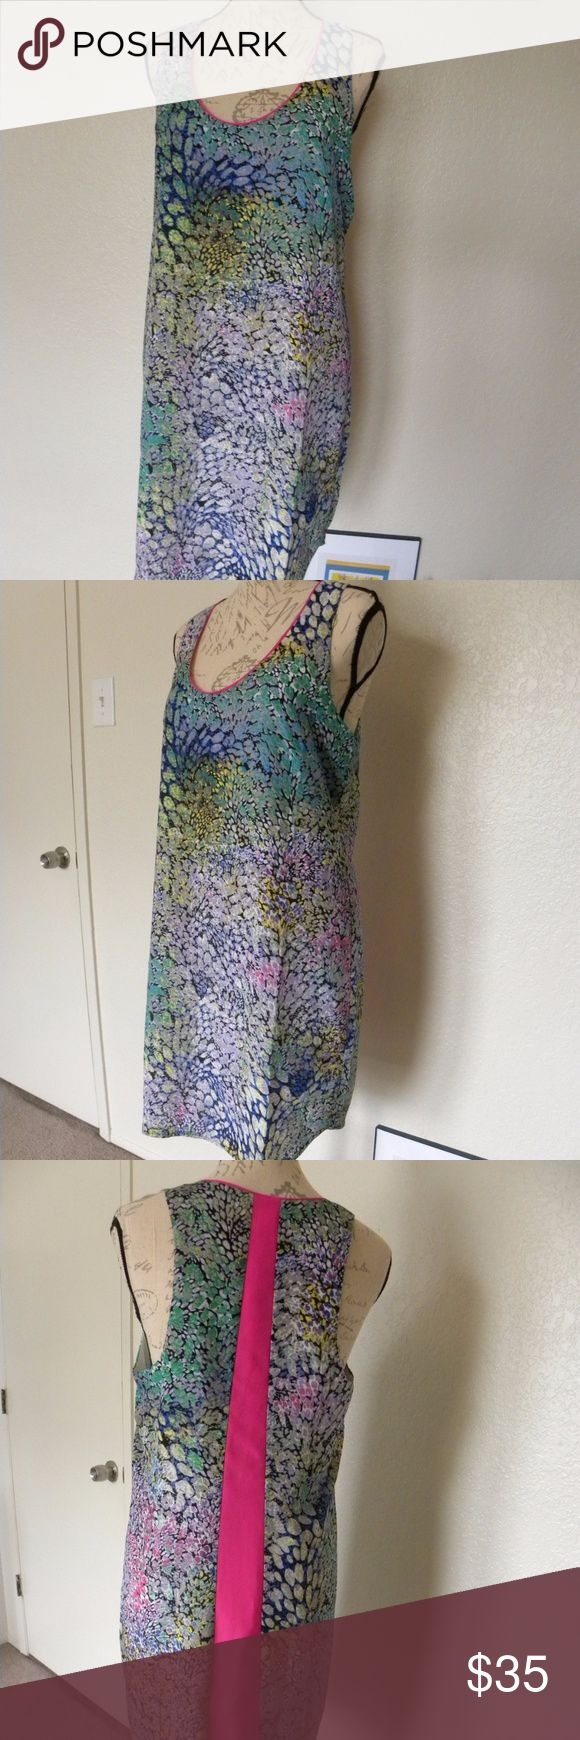 Charlie Jade Women's Dress Sleeveless Tank Size S Charlie Jade  Women's Dress Sleeveless Tank  Size Small Petite Colorful with Pink Line in back  Beautiful dress completely lined.  Chest: 38 Waist: 37 Hips:40 New with Marshall's tag, do not have a brand tag. Never used charlie Jade Dresses Midi